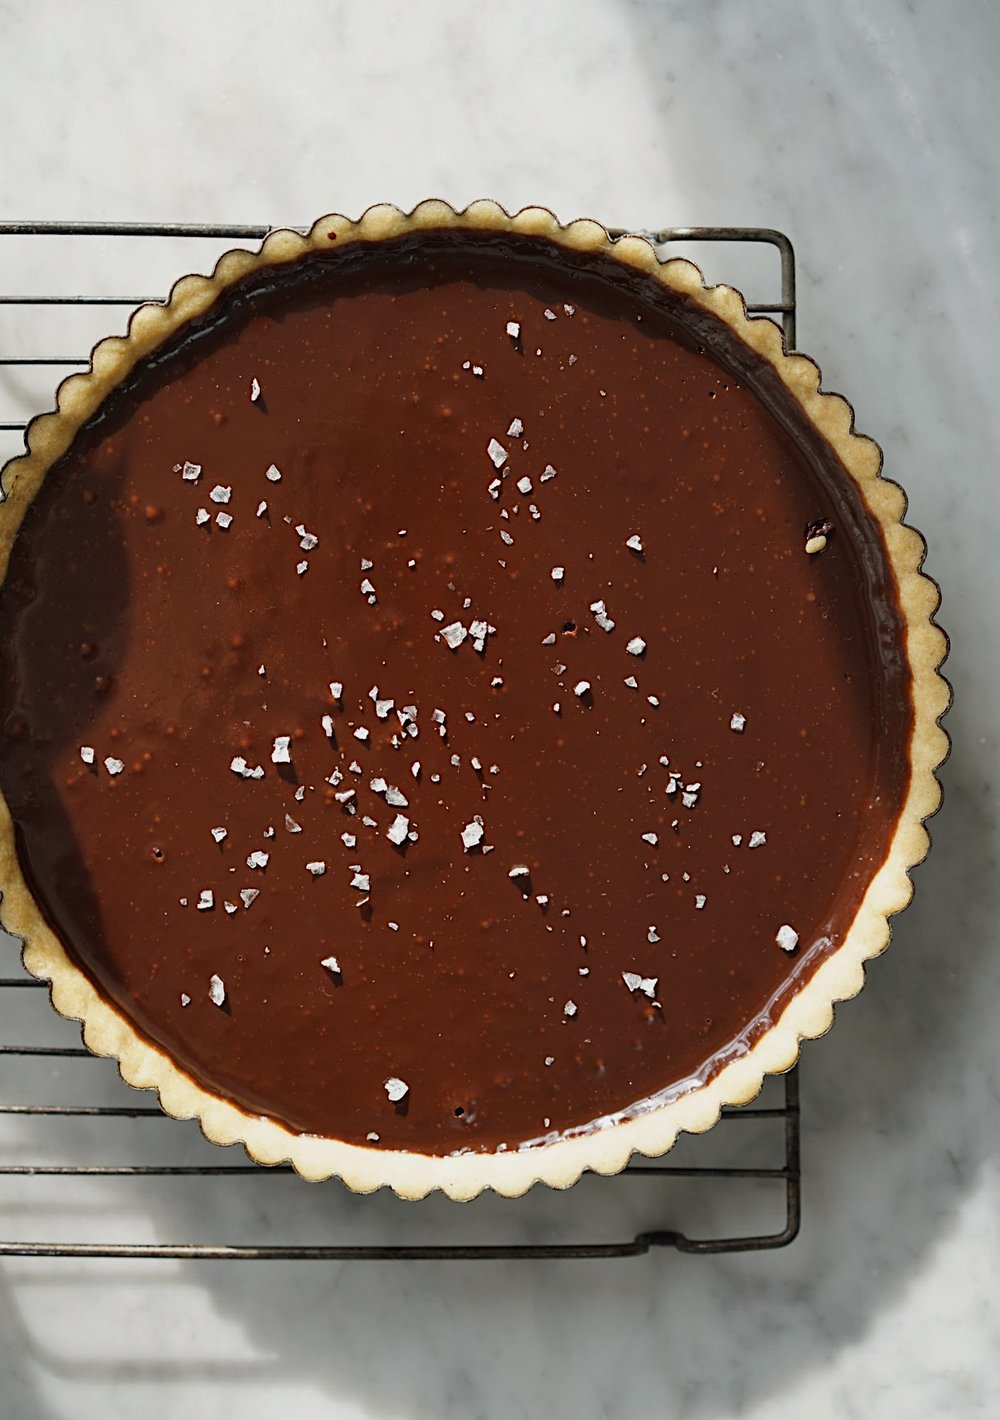 COPELAND_BITTERSWEET_CHOCOLATE_TRUFFLE_TART_SEA_SALTF7F63.JPGBITTERSWEET CHOCOLATE TART WITH SEA SALT  by Sarah Copeland #chocolate #bittersweetchocolate #chocolaterecipes #chocolatetruffle #sarahcopeland #edibleliving